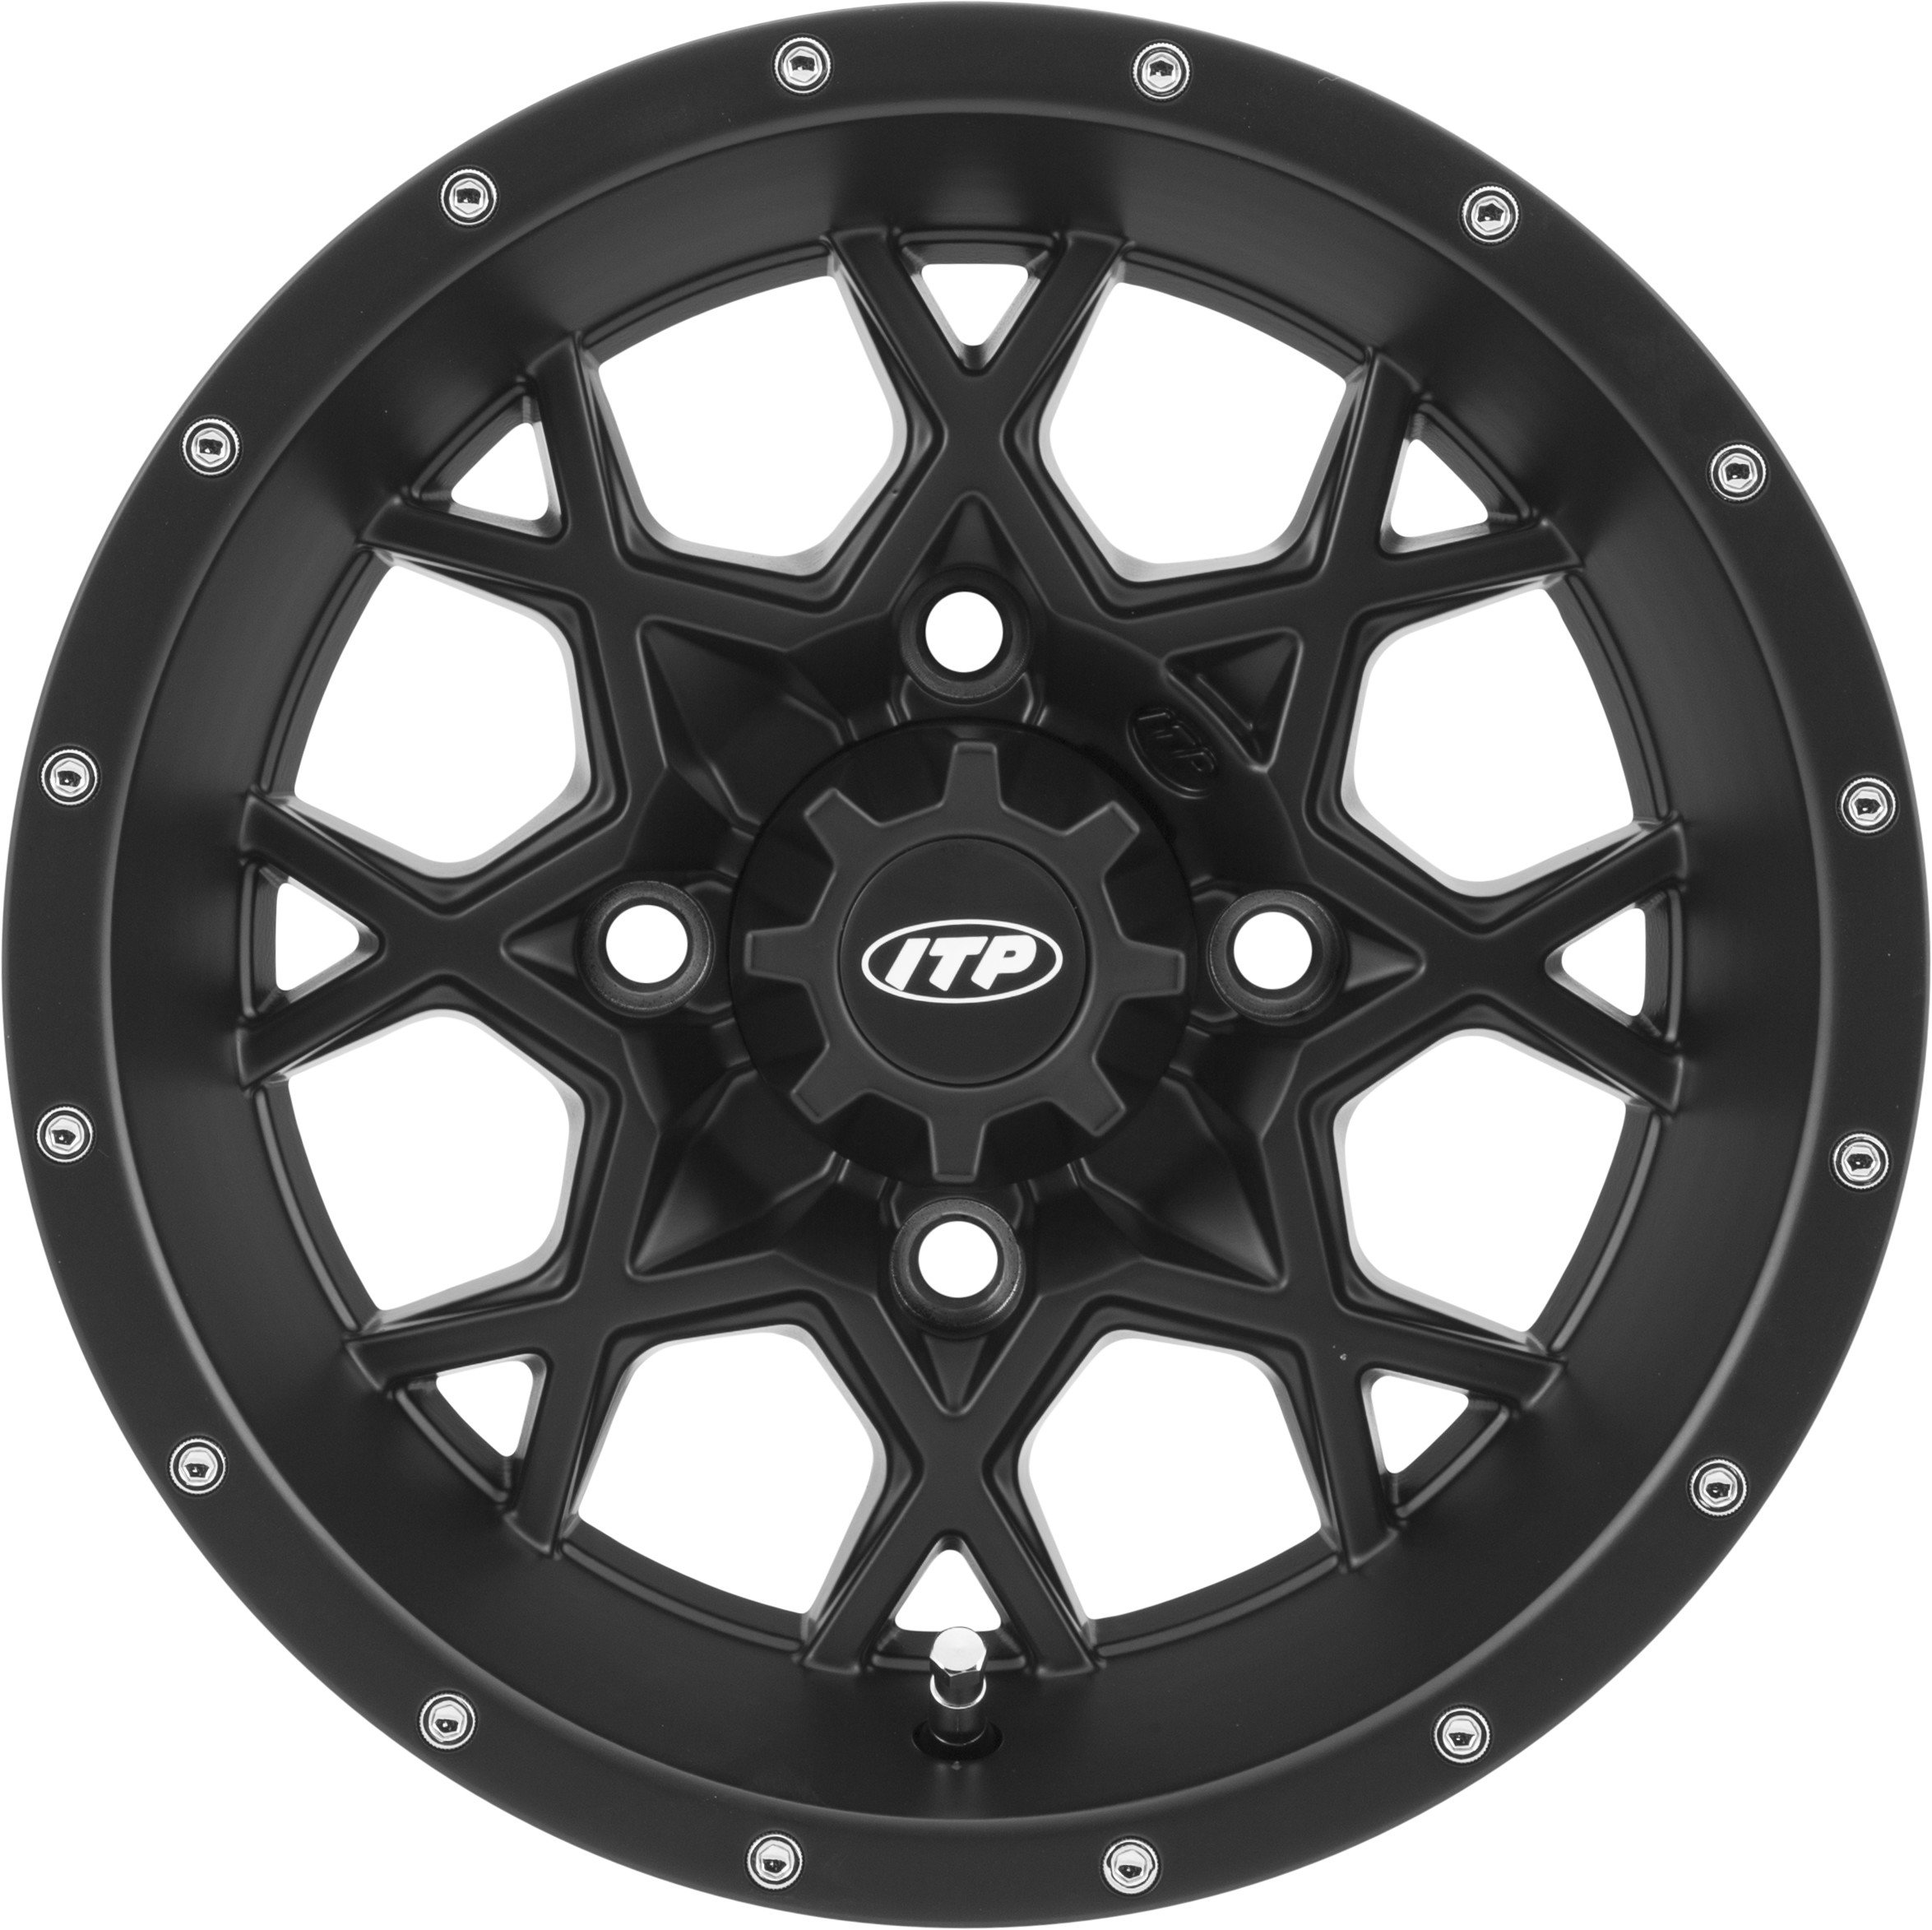 ITP Hurricane Matte Black Wheel with Machined Finish (14x7''/4x156mm)